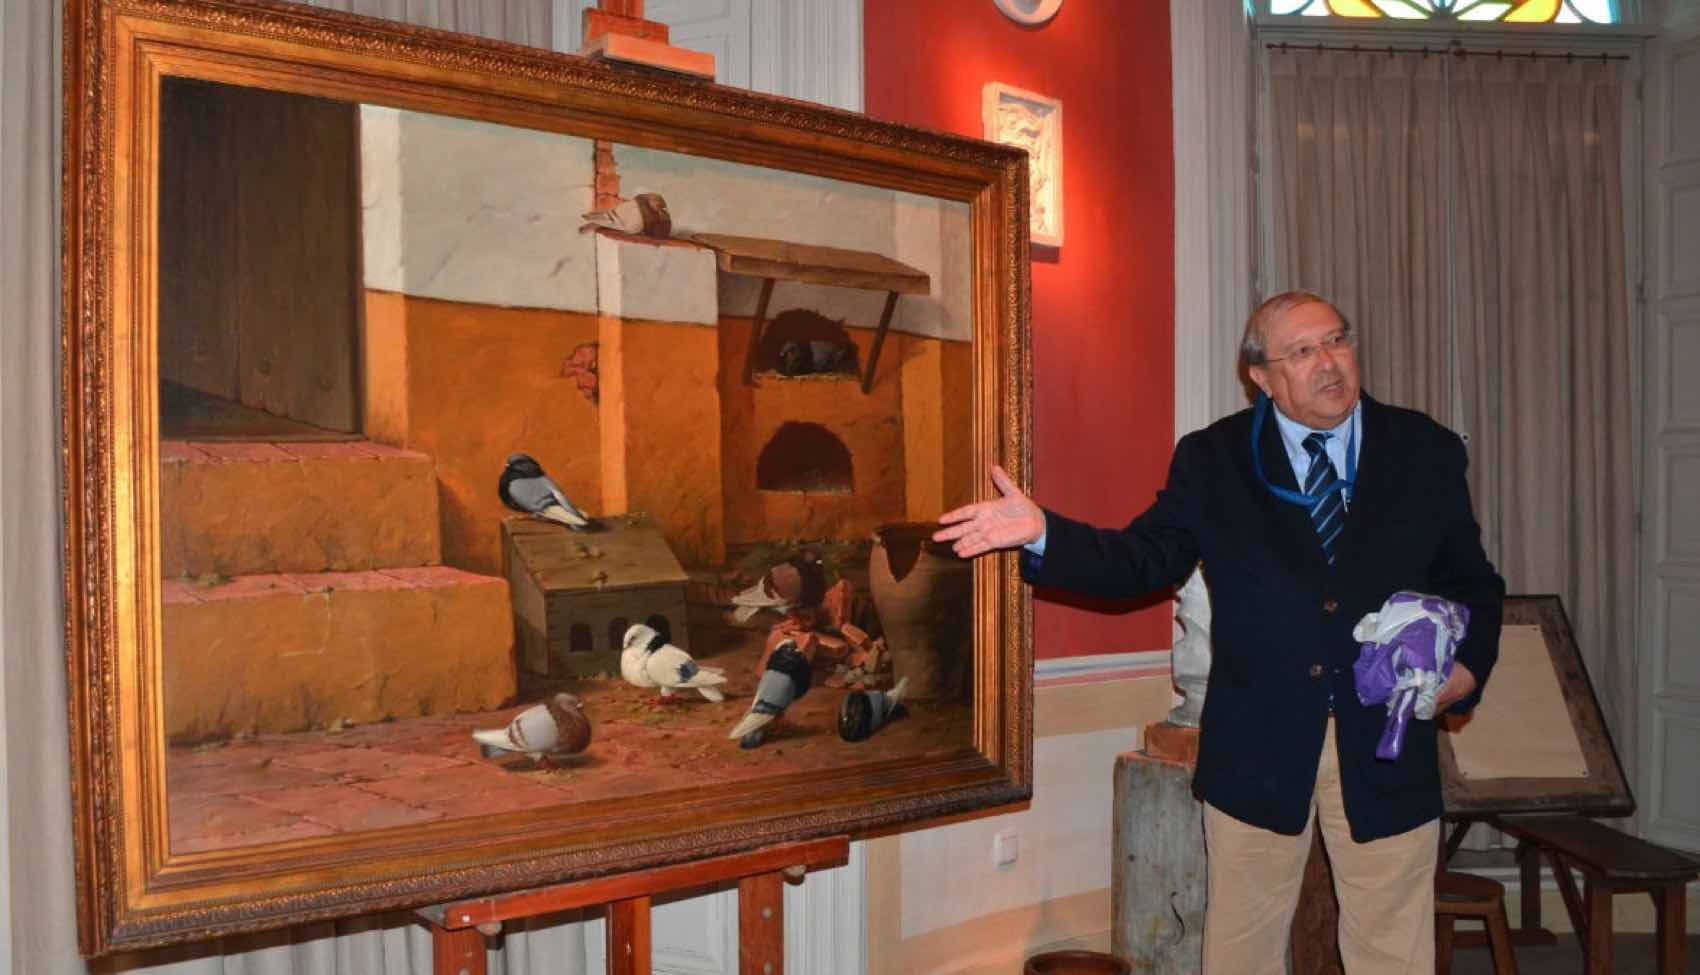 Art at home: A guide at the Picasso Home Museum